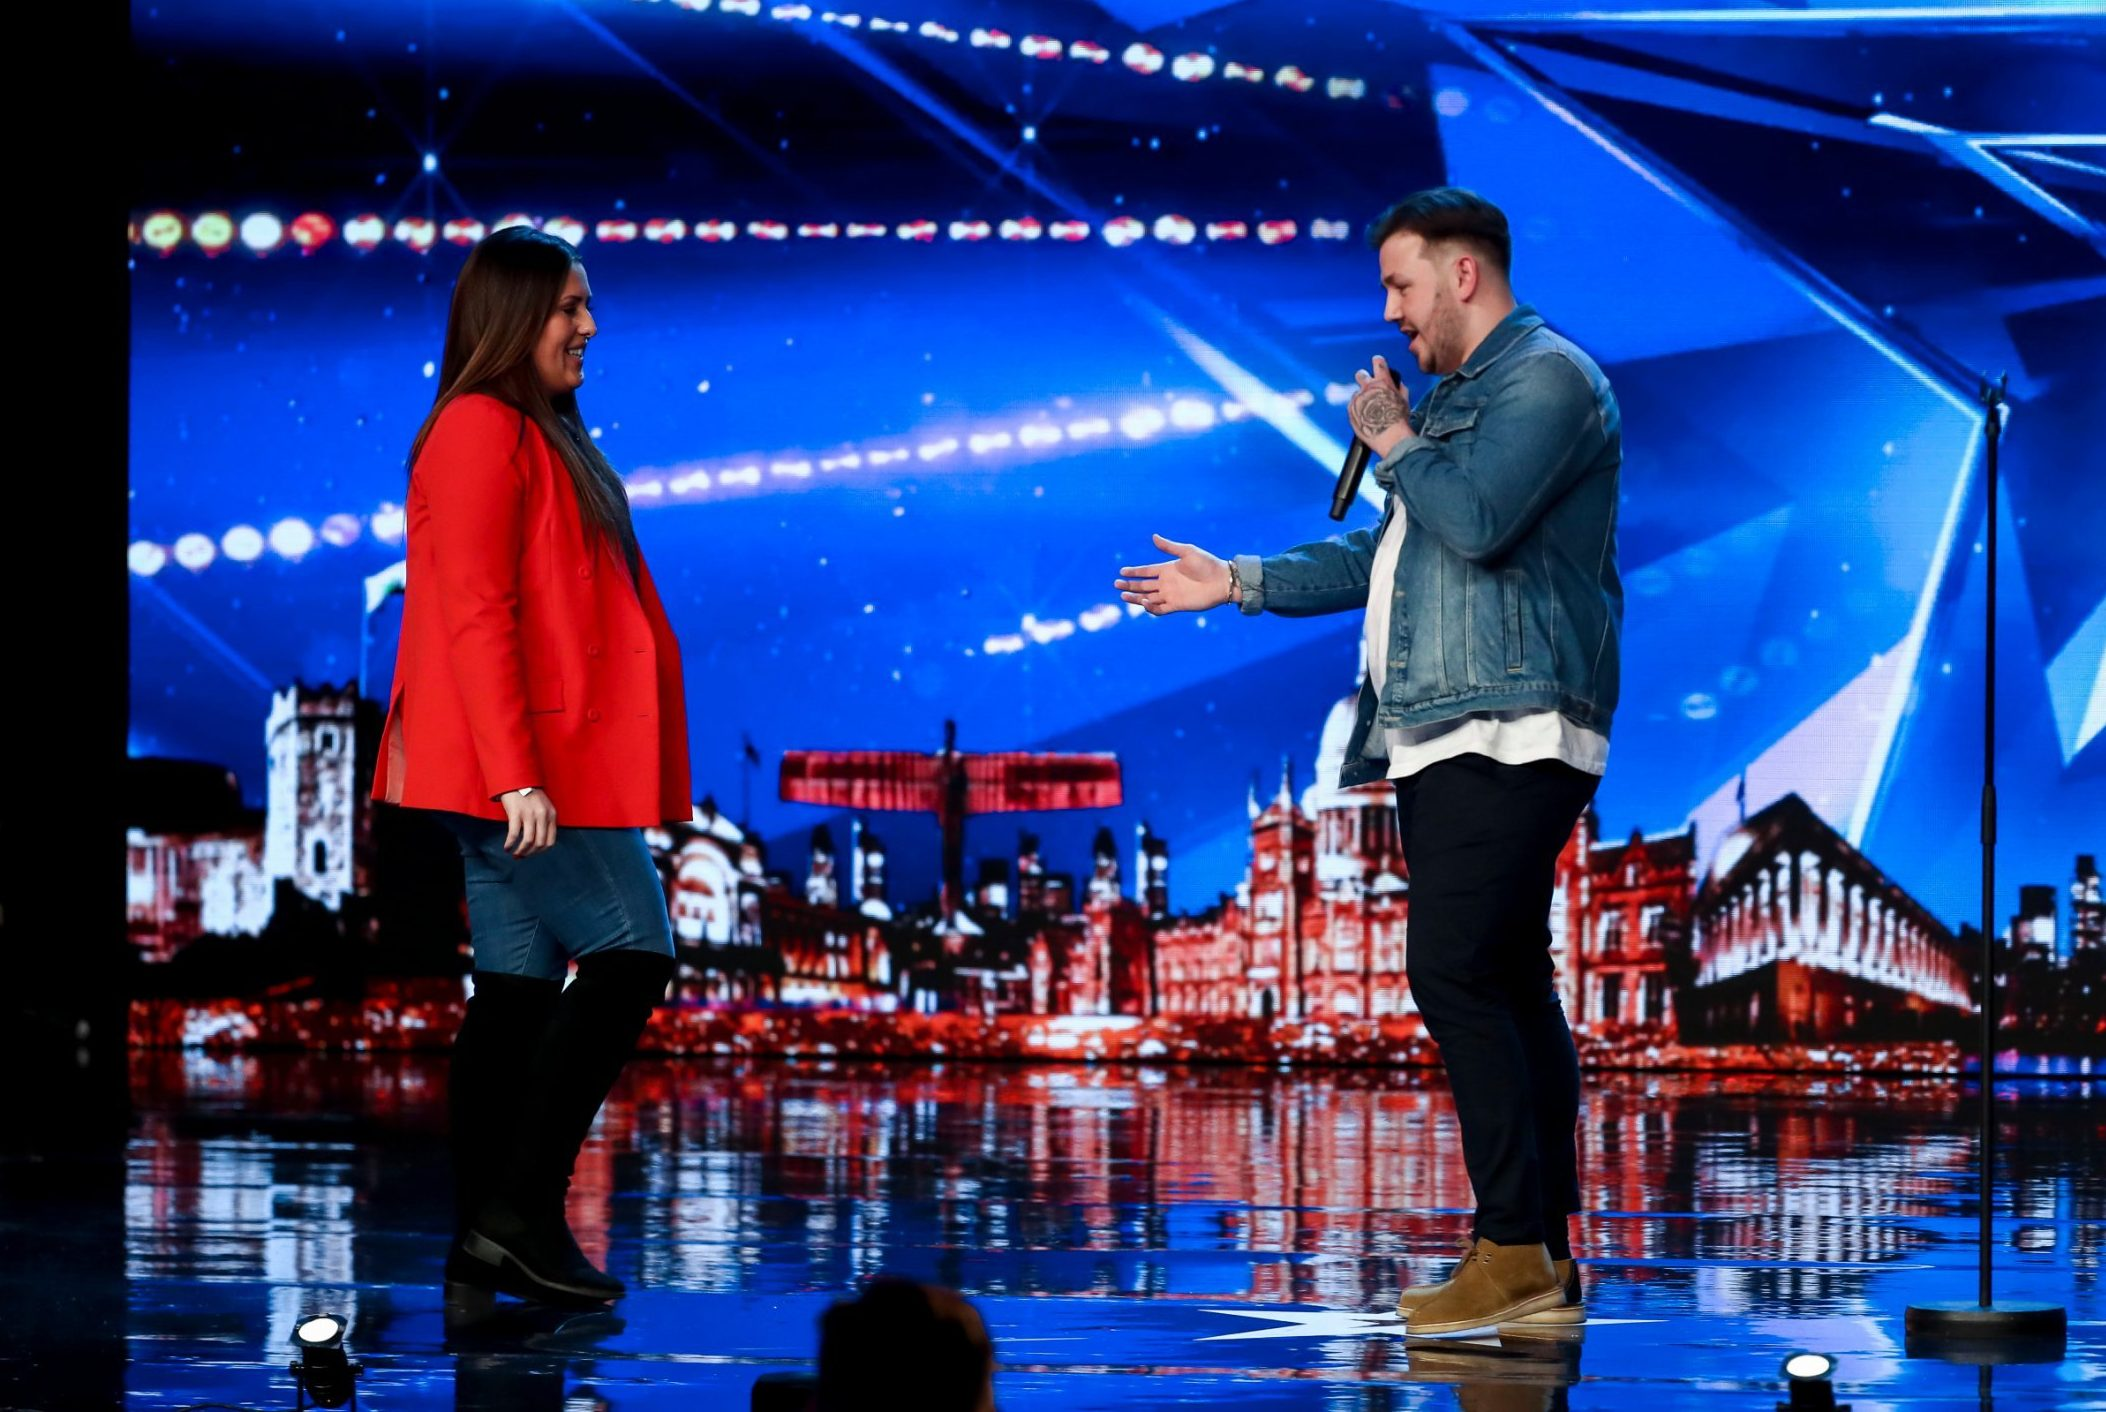 Simon Cowell tears up as contestant gets down on one knee in first ever Britain's Got Talent proposal